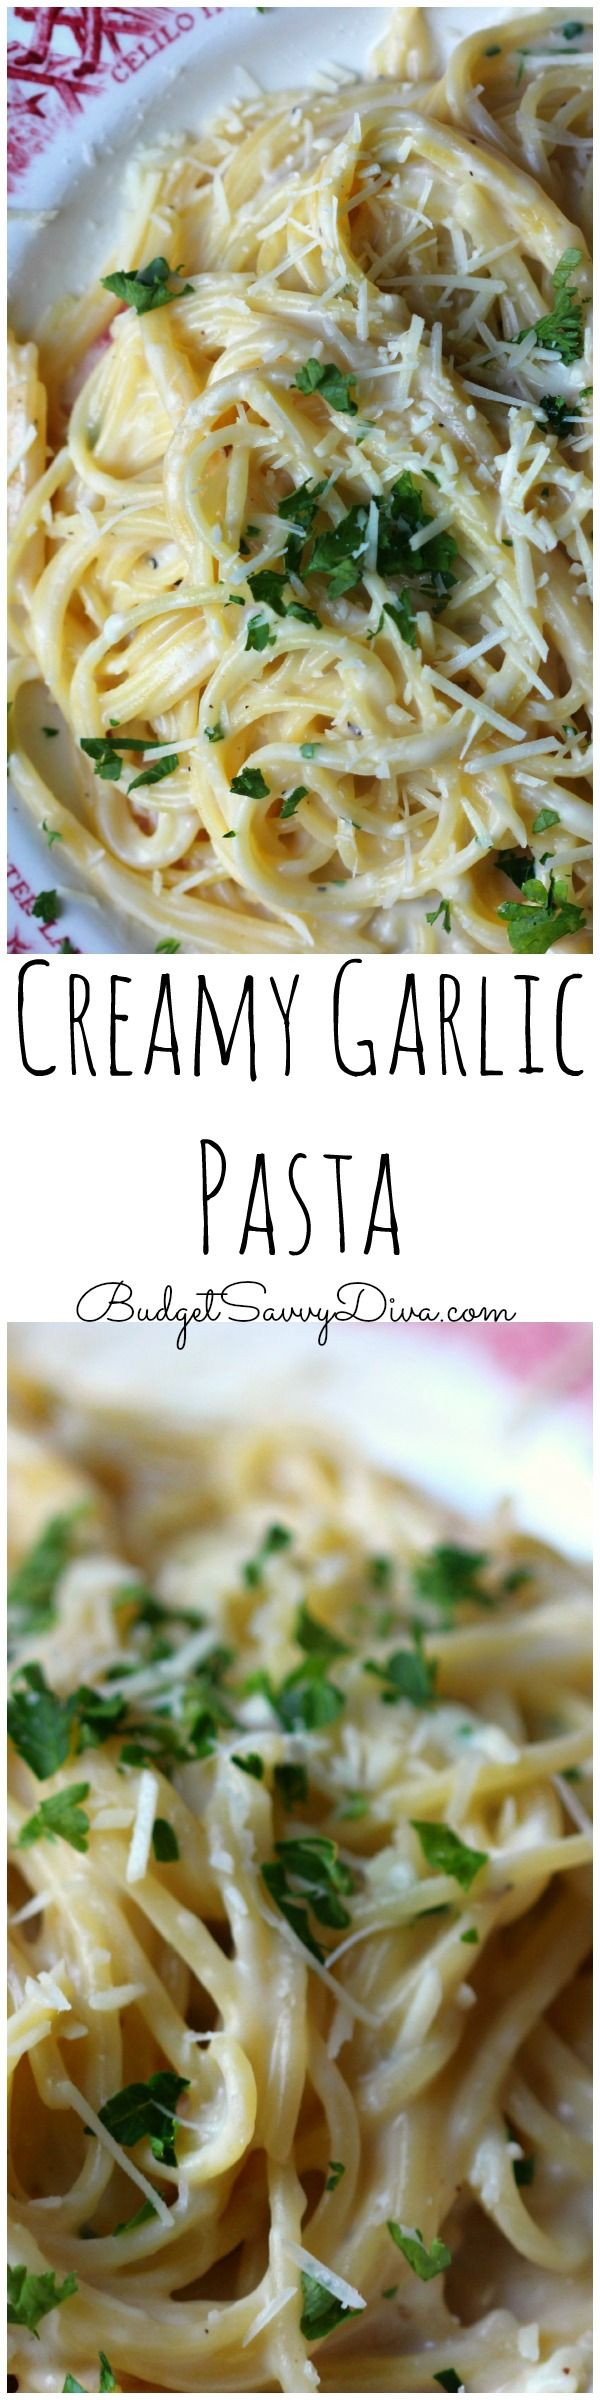 Creamy Garlic Pasta Recipe